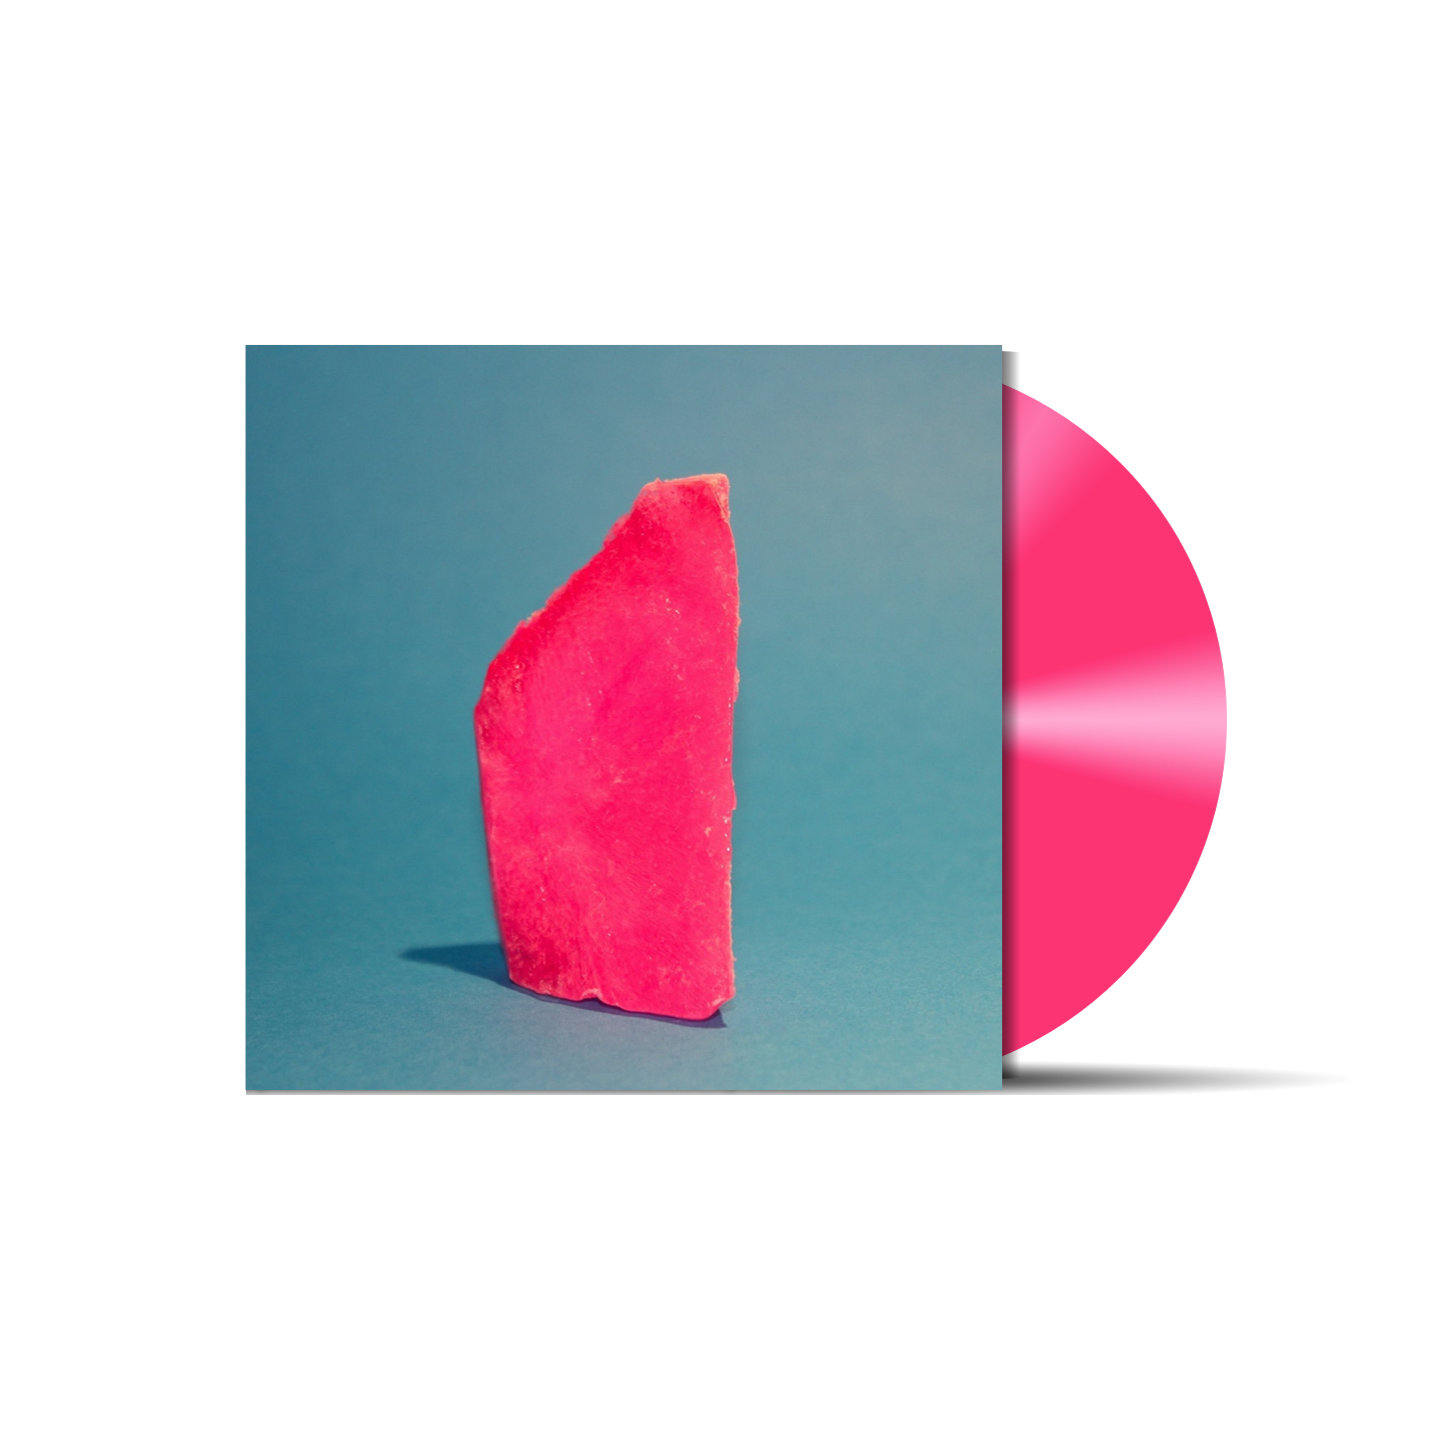 The Physics House Band - 'Horizons / Rapture' (Pink Vinyl) - Unearthly Vision